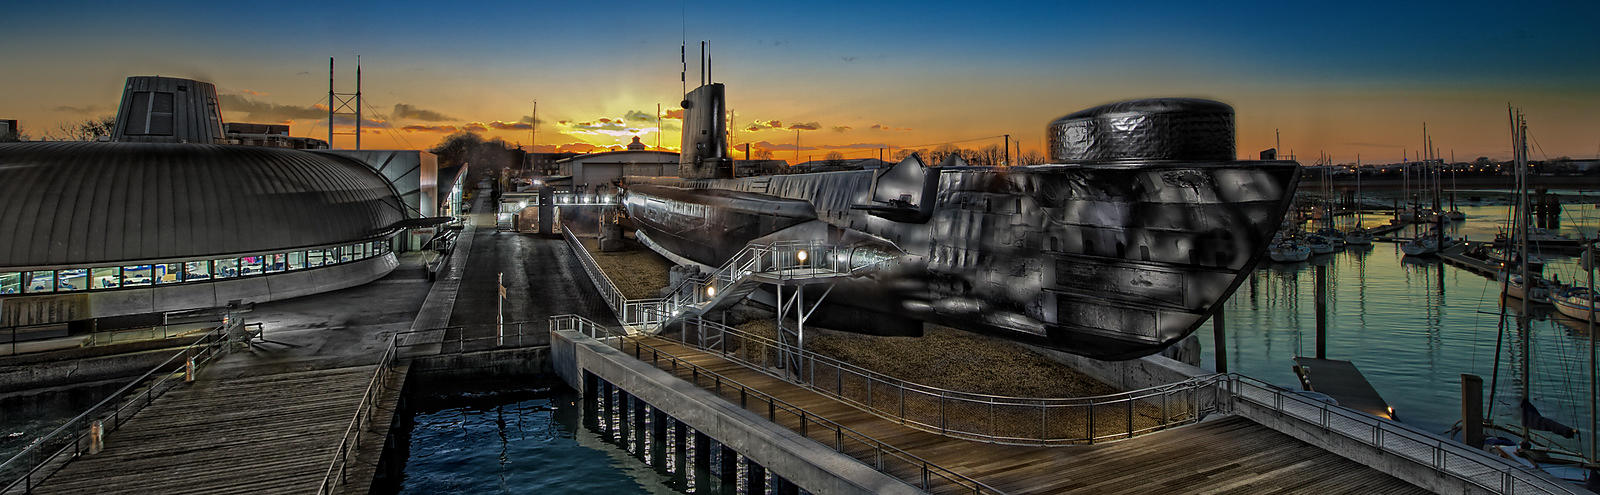 HMS Alliance WW2 Submarine; Gosport